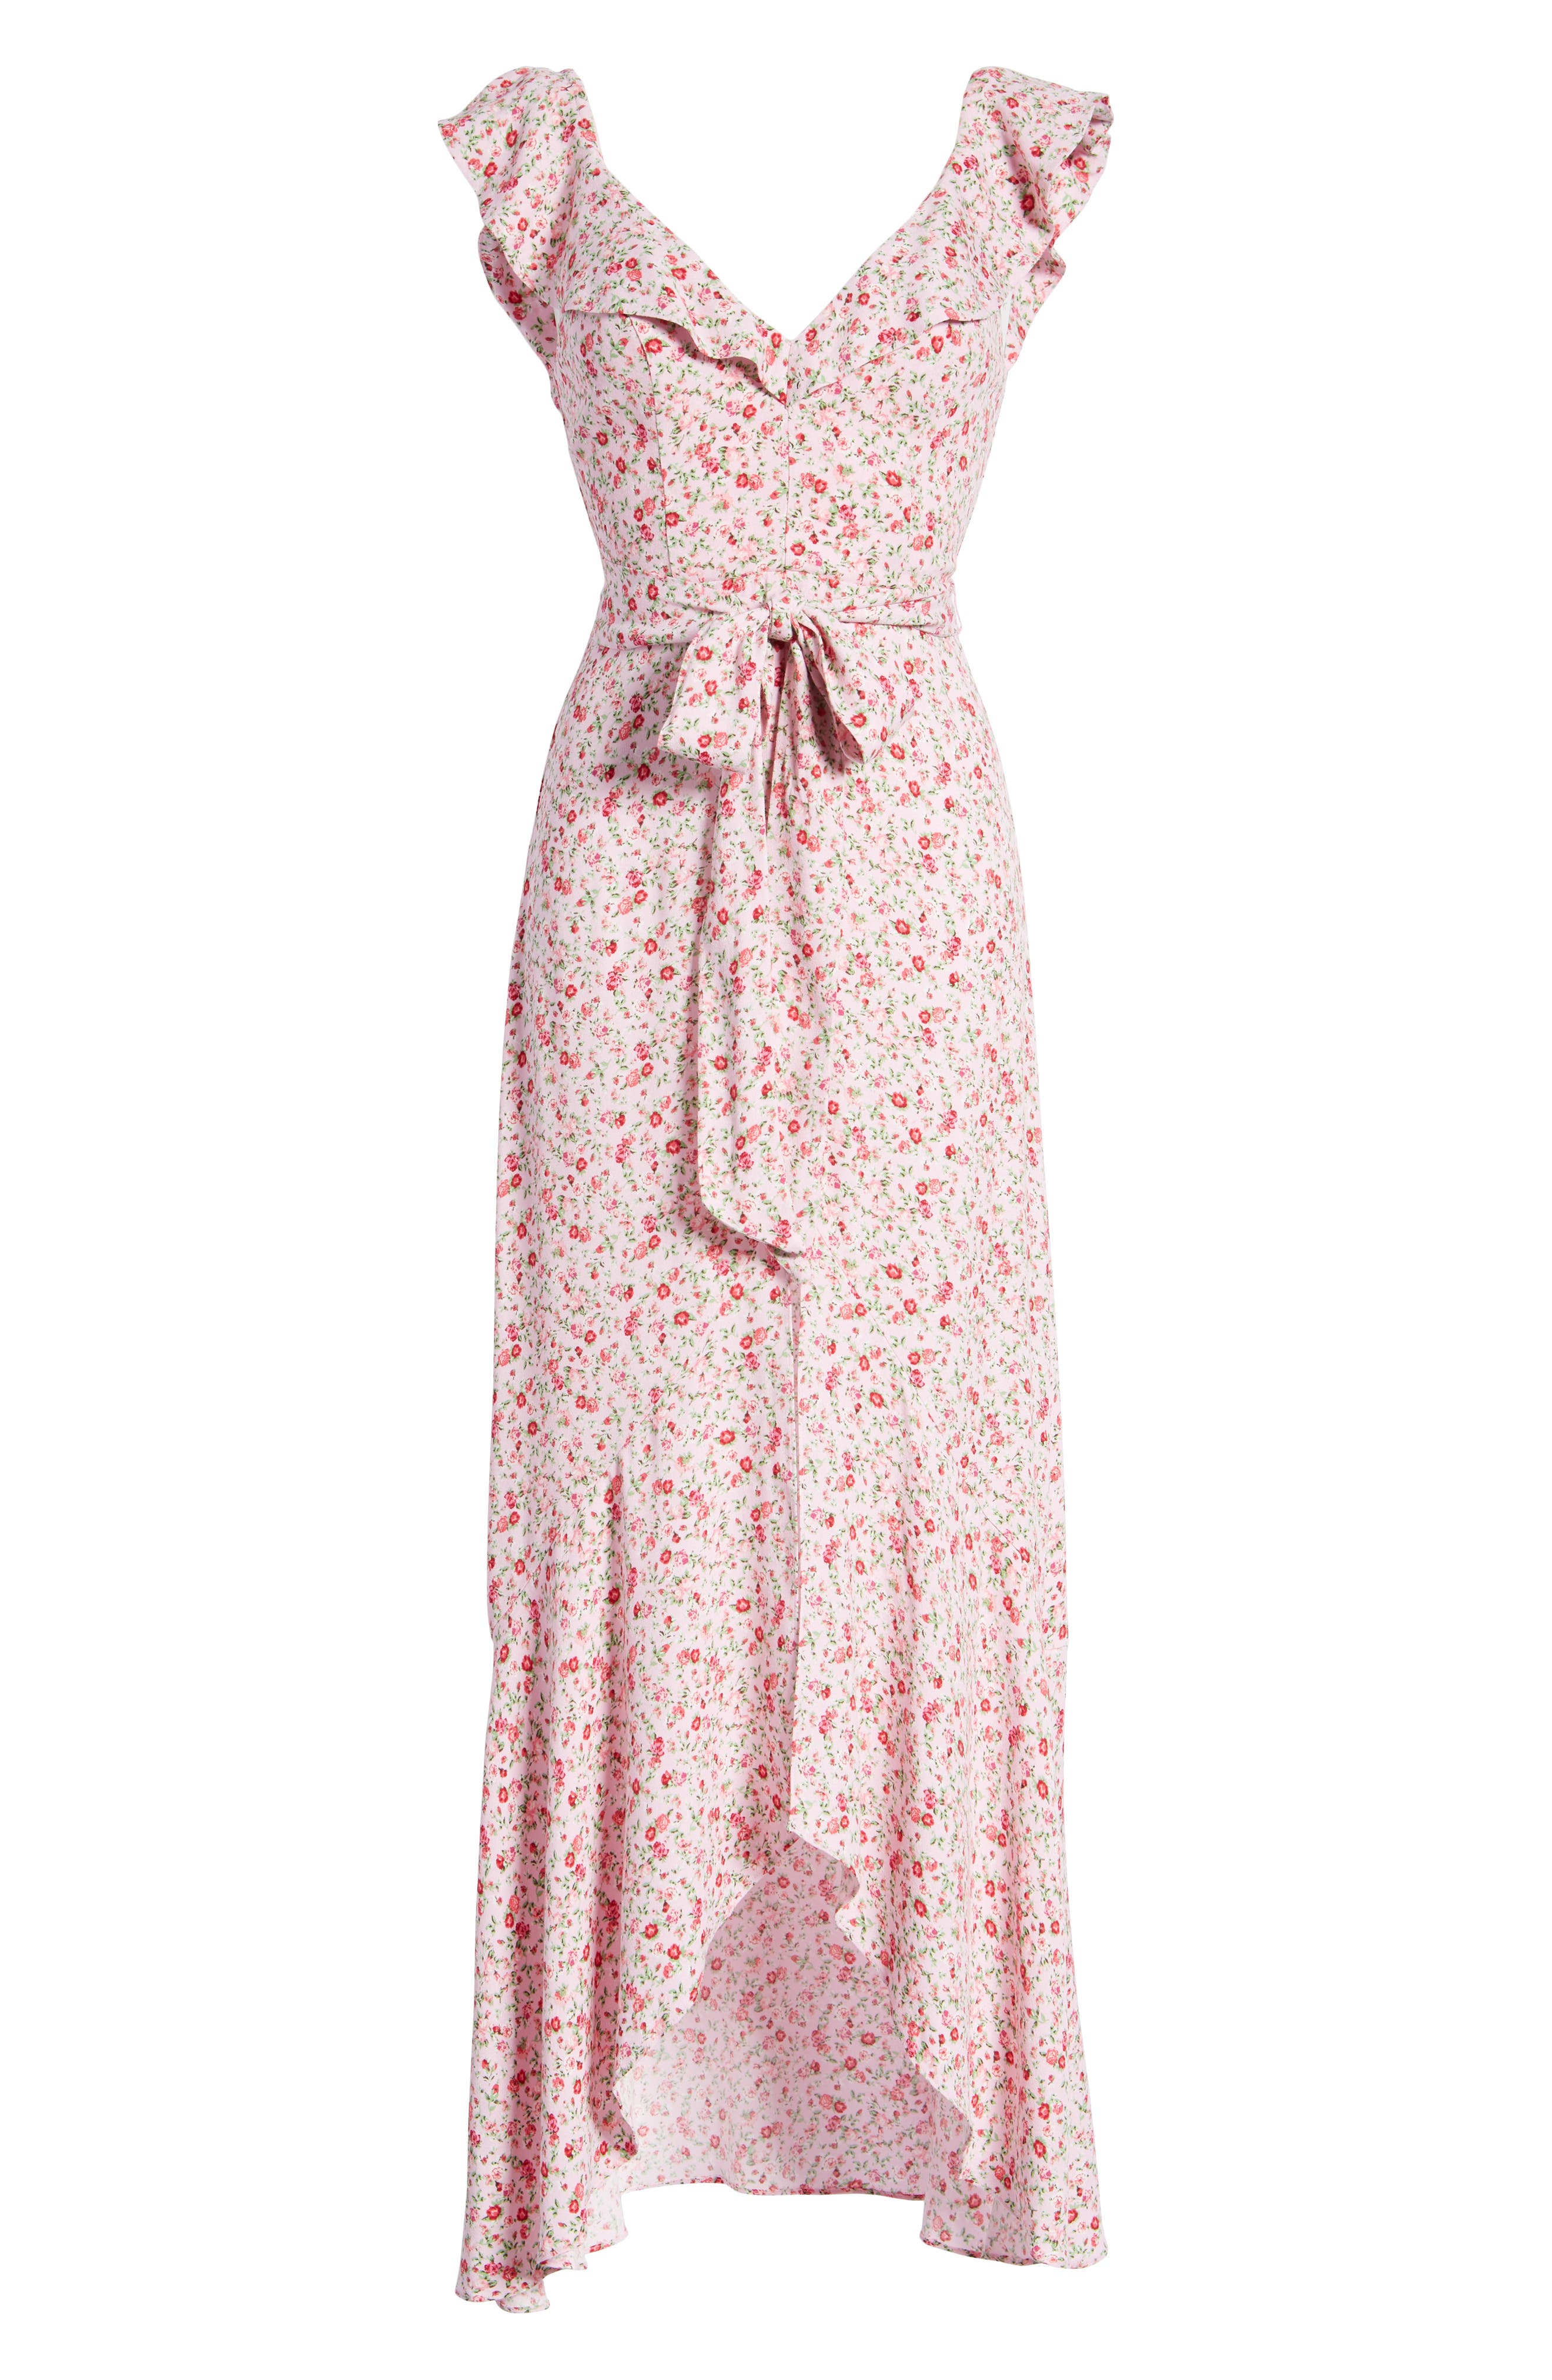 Lucie Maxi Dress,                             Alternate thumbnail 7, color,                             BABY PINK DITSY